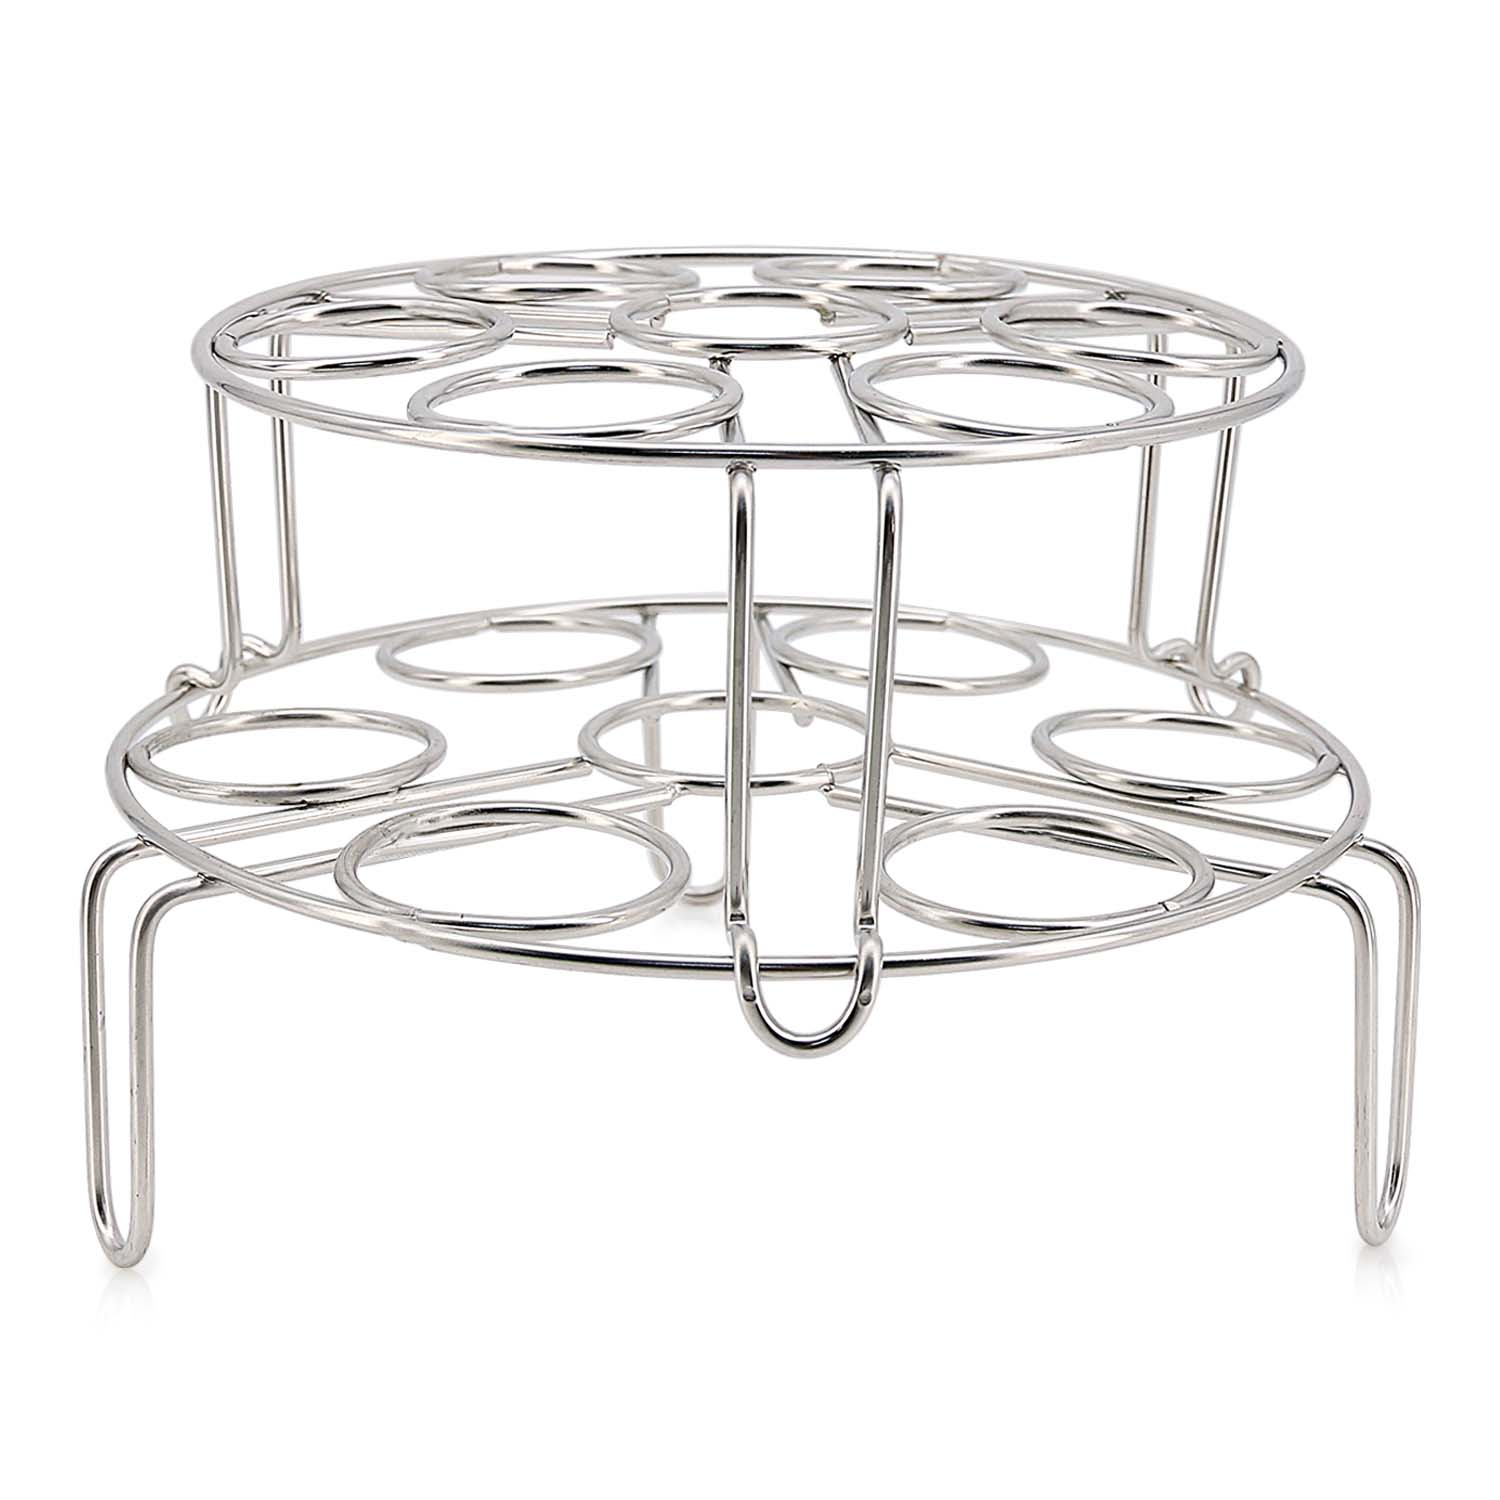 TOPOKO Set of 2 Egg Steamer Racks. Stainless Steel Kitchen Stackable Steamer Trivet for Instant Pot and Pressure Cooker Accessories. Dish Washer Safe.